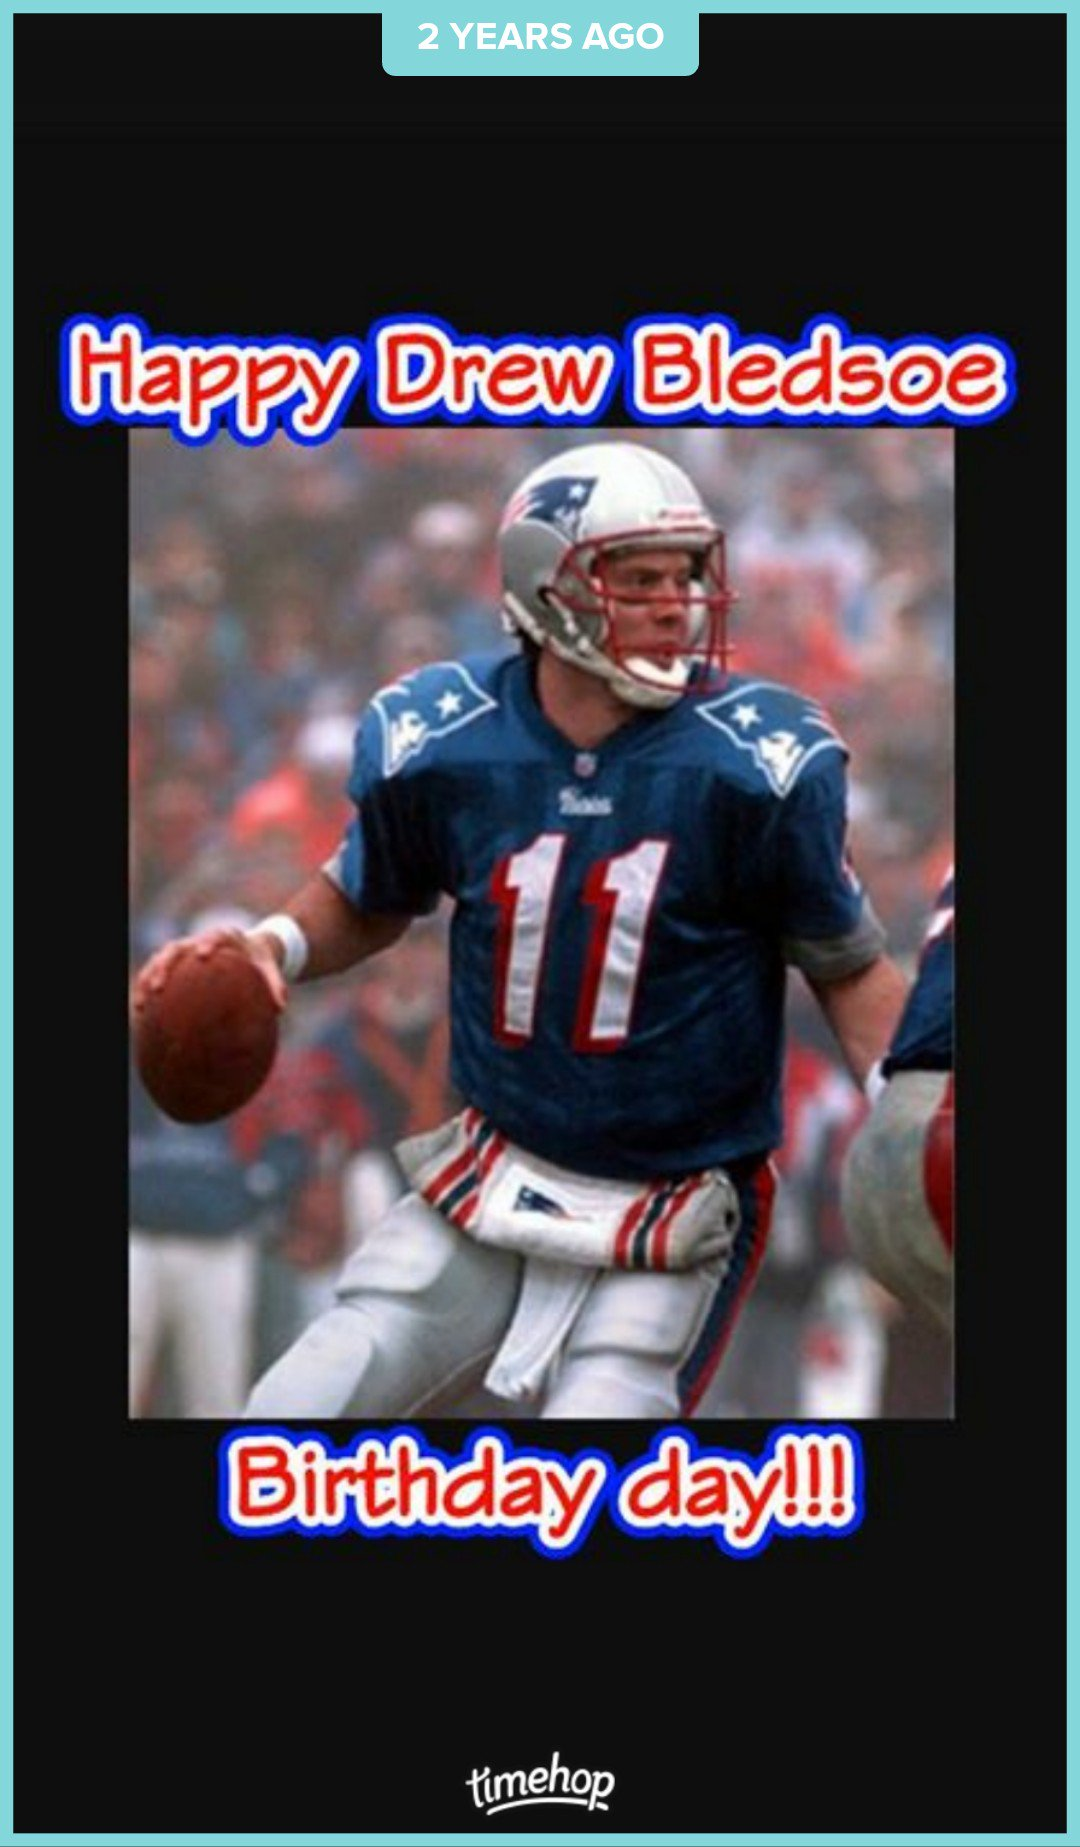 Happy Drew Bledsoe Birthday Day everybody